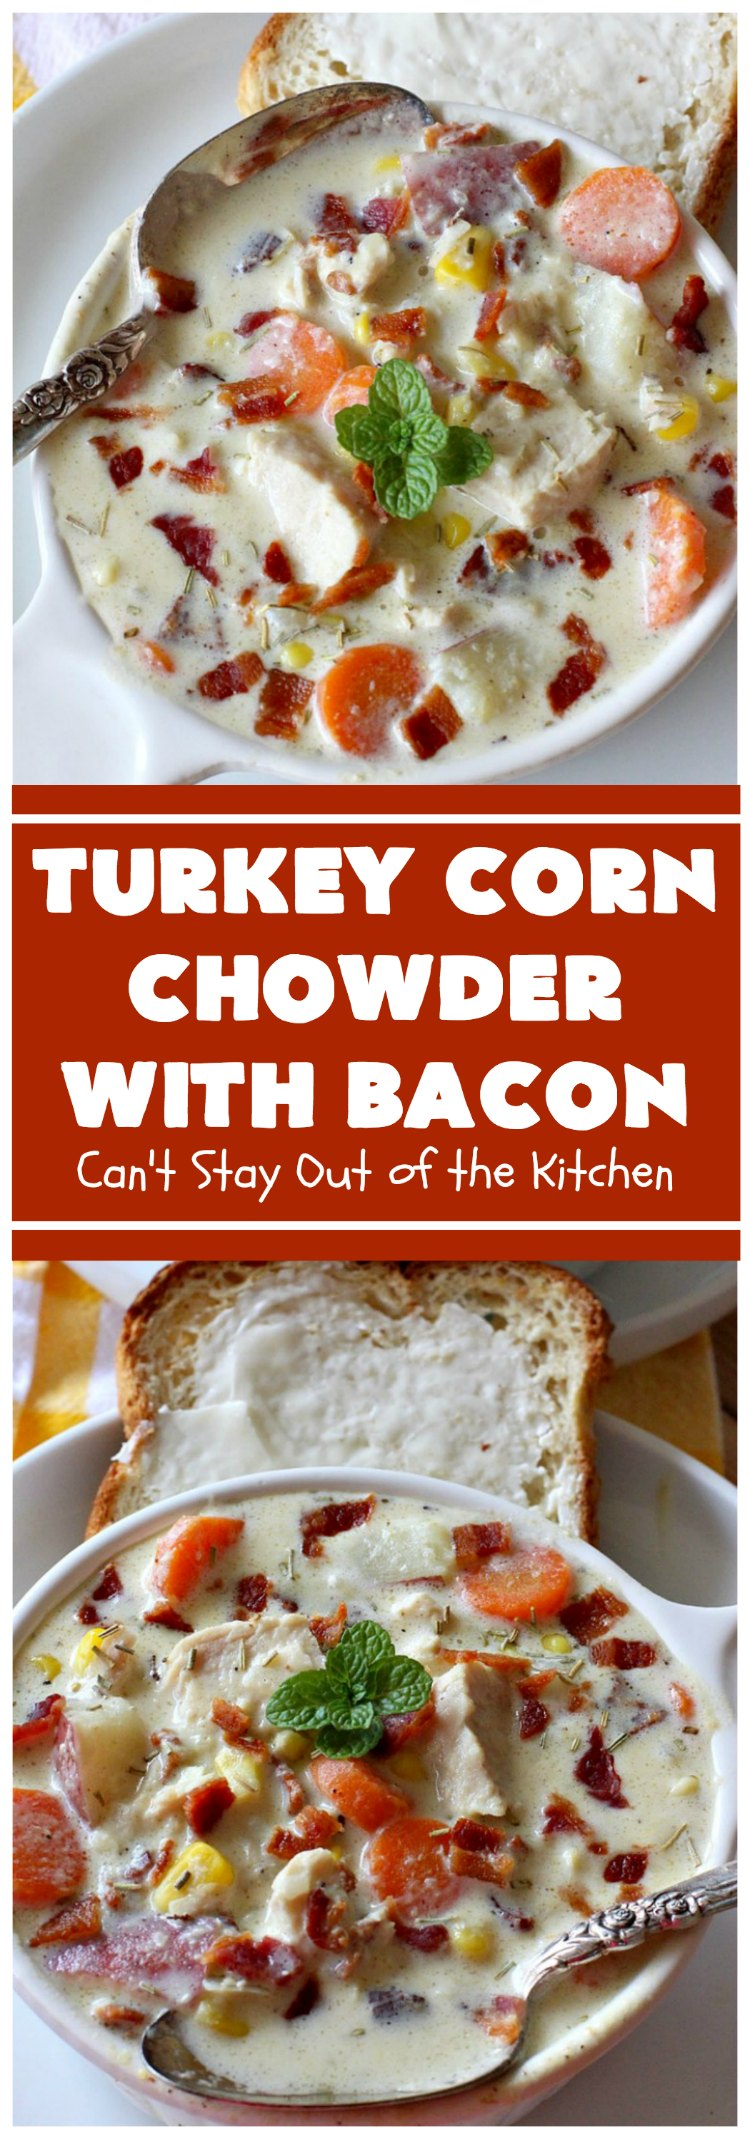 Turkey Corn Chowder | Can't Stay Out of the Kitchen